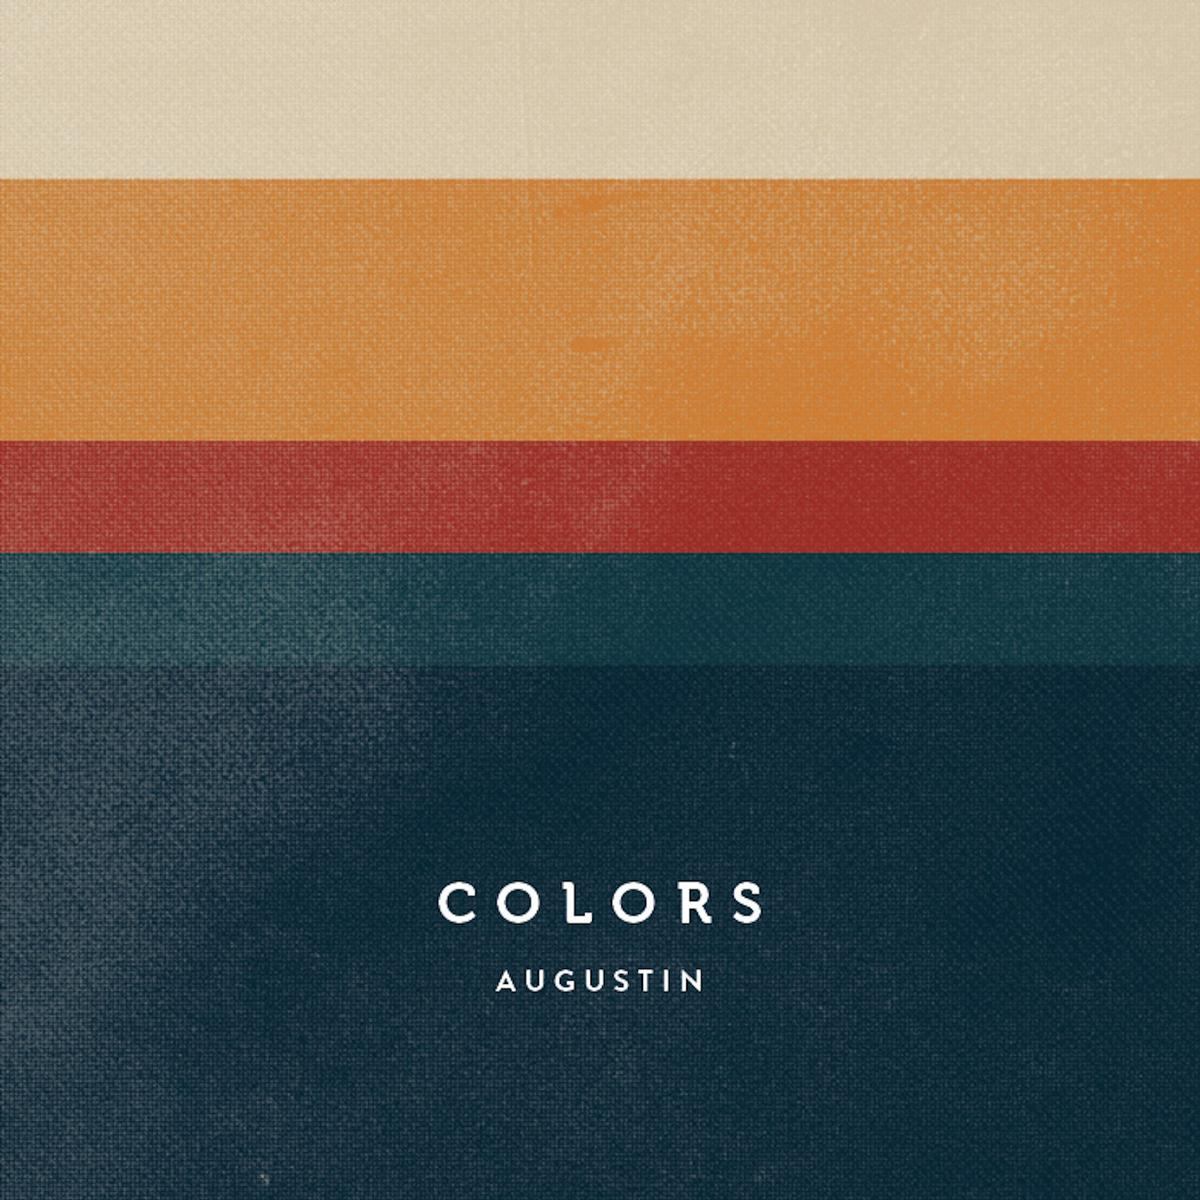 Augustin – Colors